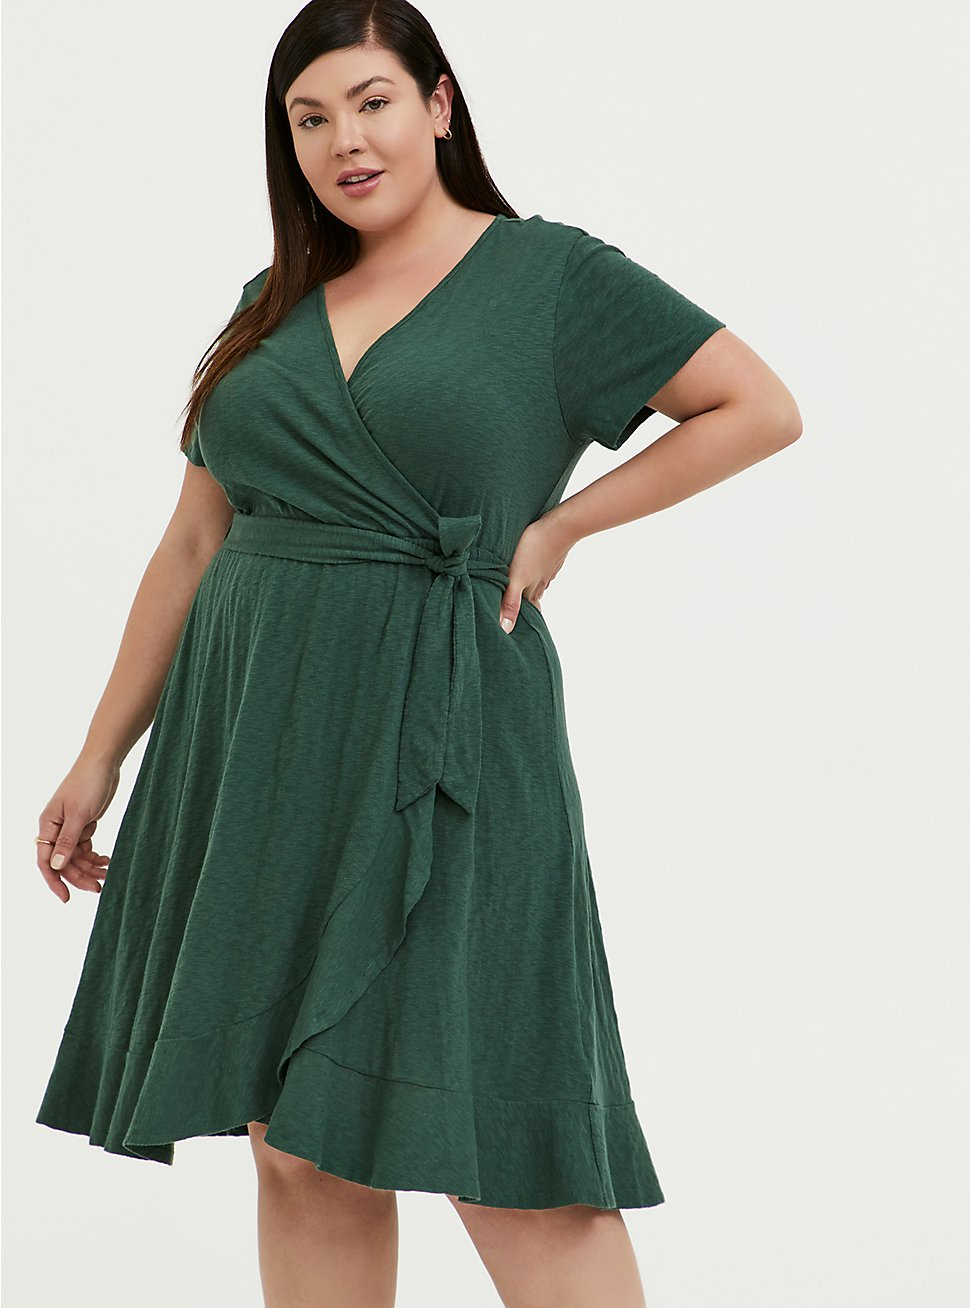 Green Slub Jersey Ruffle Mini Wrap Dress, GARDEN TOPIARY, hi-res